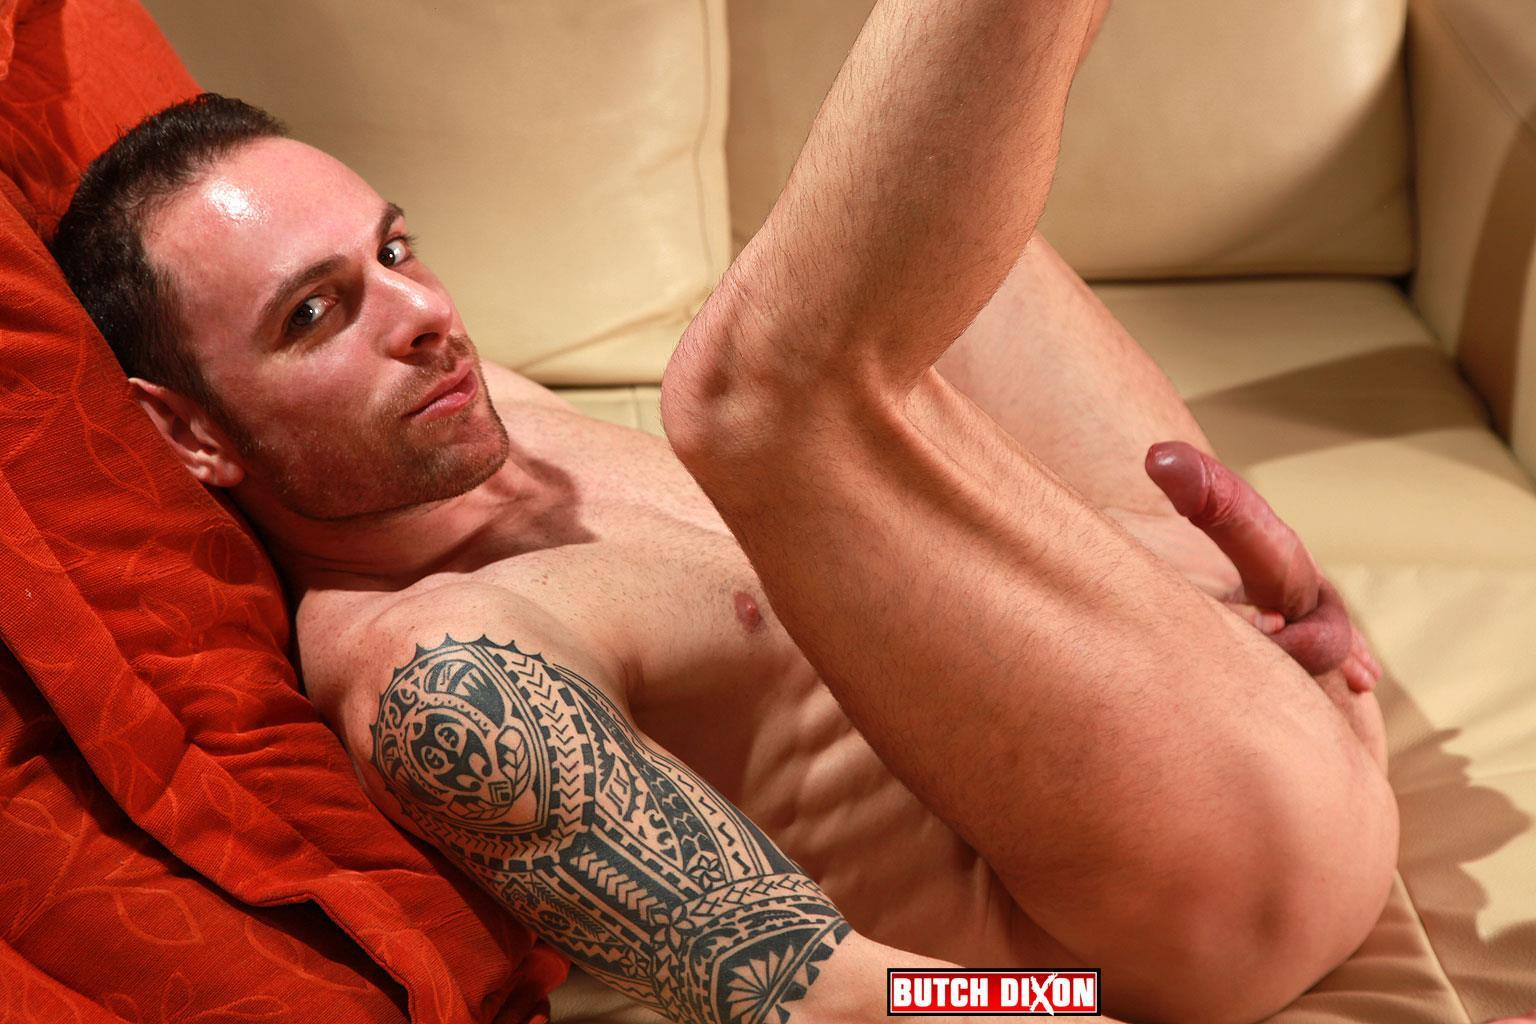 Butch Dixon Aitor Bravo and Craig Daniel Big Uncut Cock Barebacking Breeding BBBH Amateur Gay Porn 27 Craig Daniel Barebacking Aitor Bravo With His Huge Uncut Cock